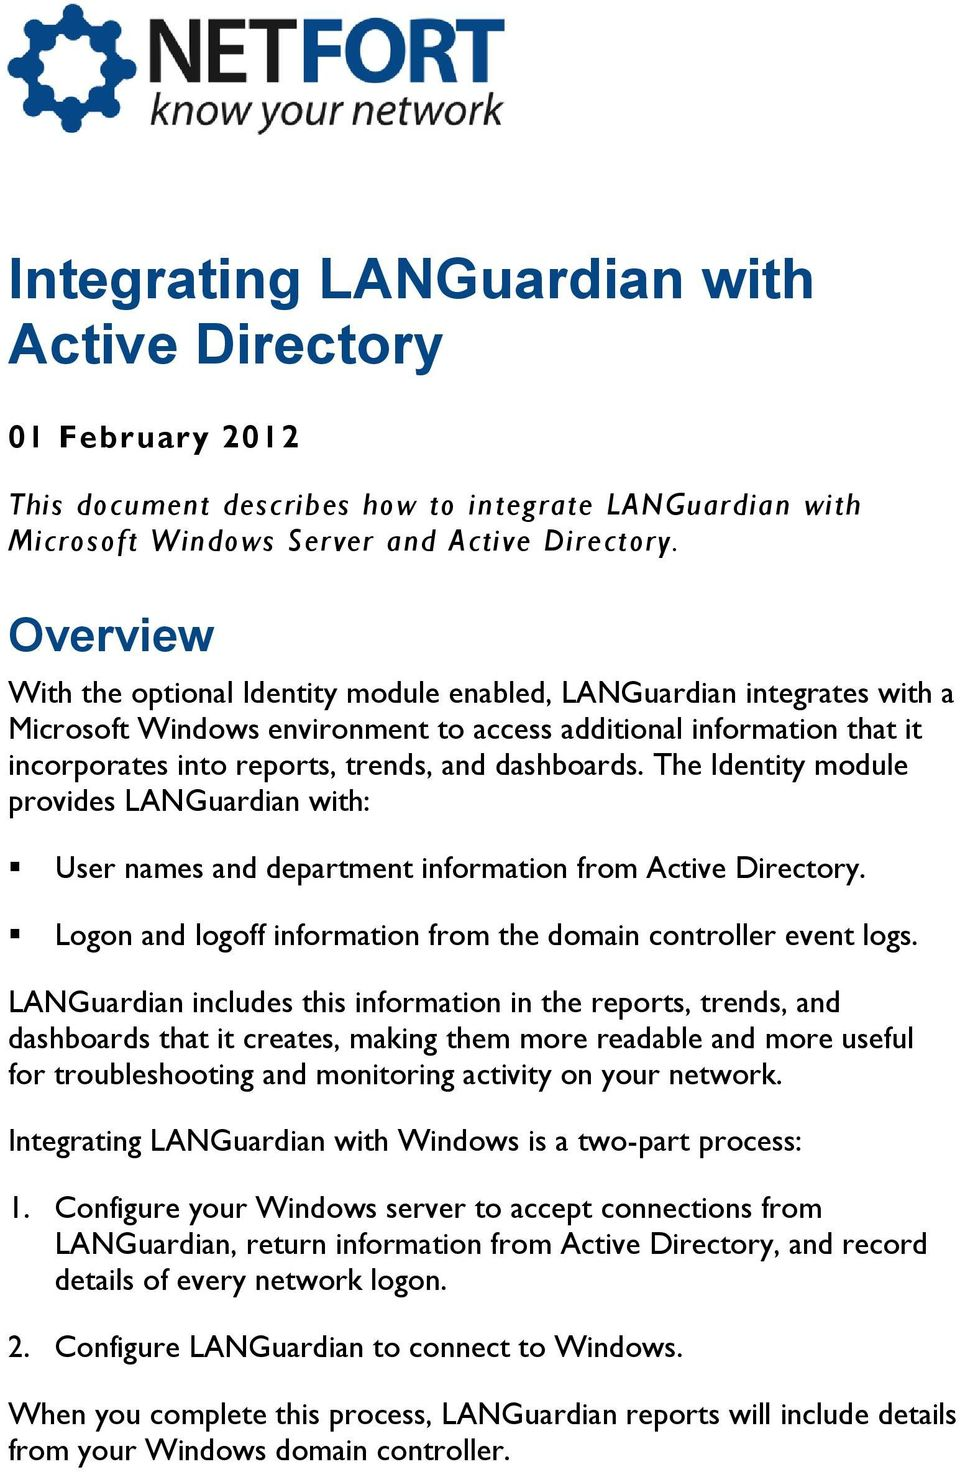 dashboards. The Identity module provides LANGuardian with: User names and department information from Active Directory. Logon and logoff information from the domain controller event logs.